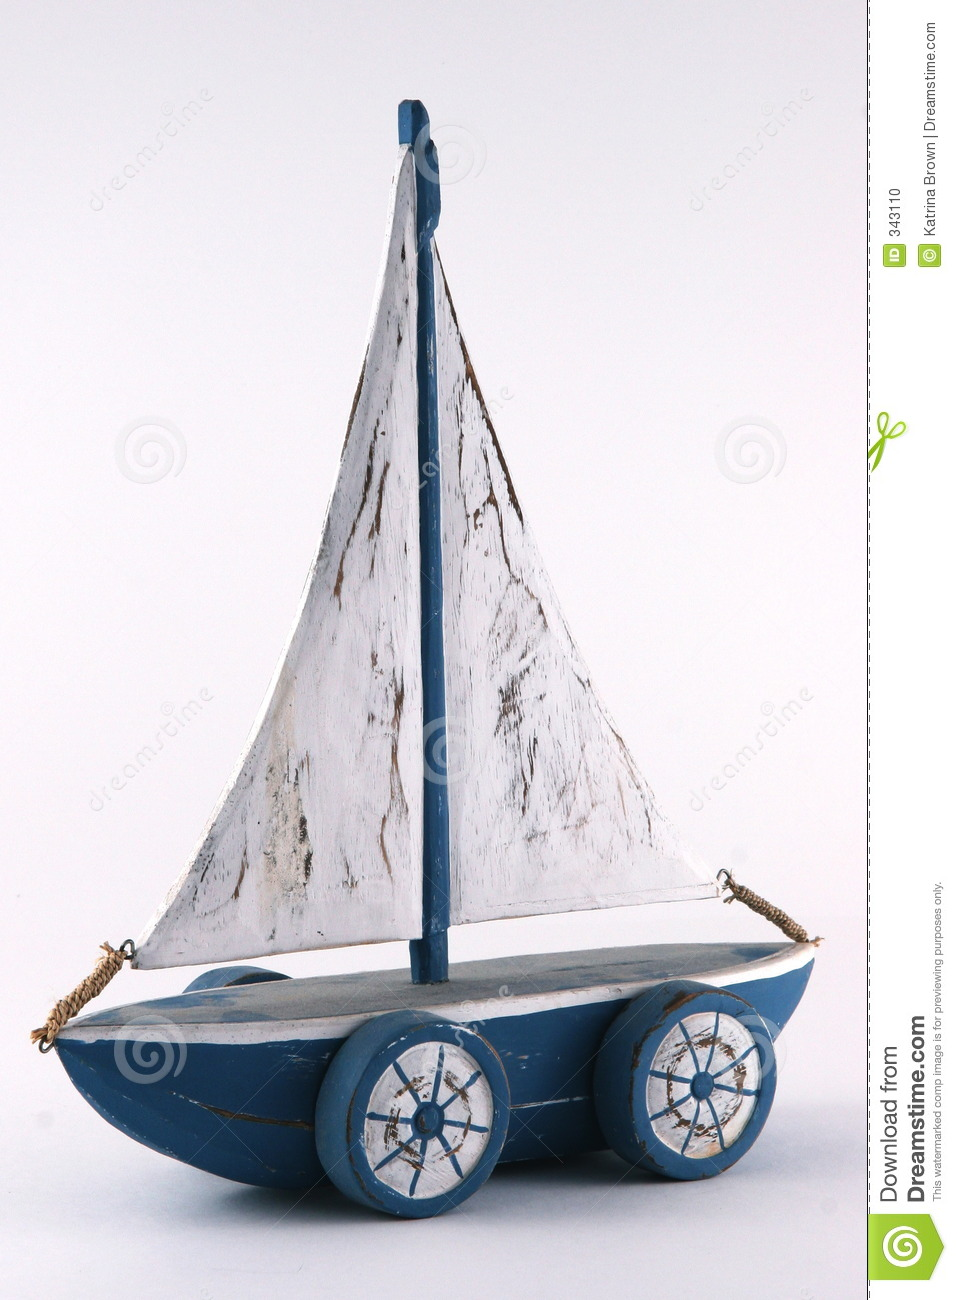 Wooden Child's Toy Sailboat Stock Photo - Image: 343110